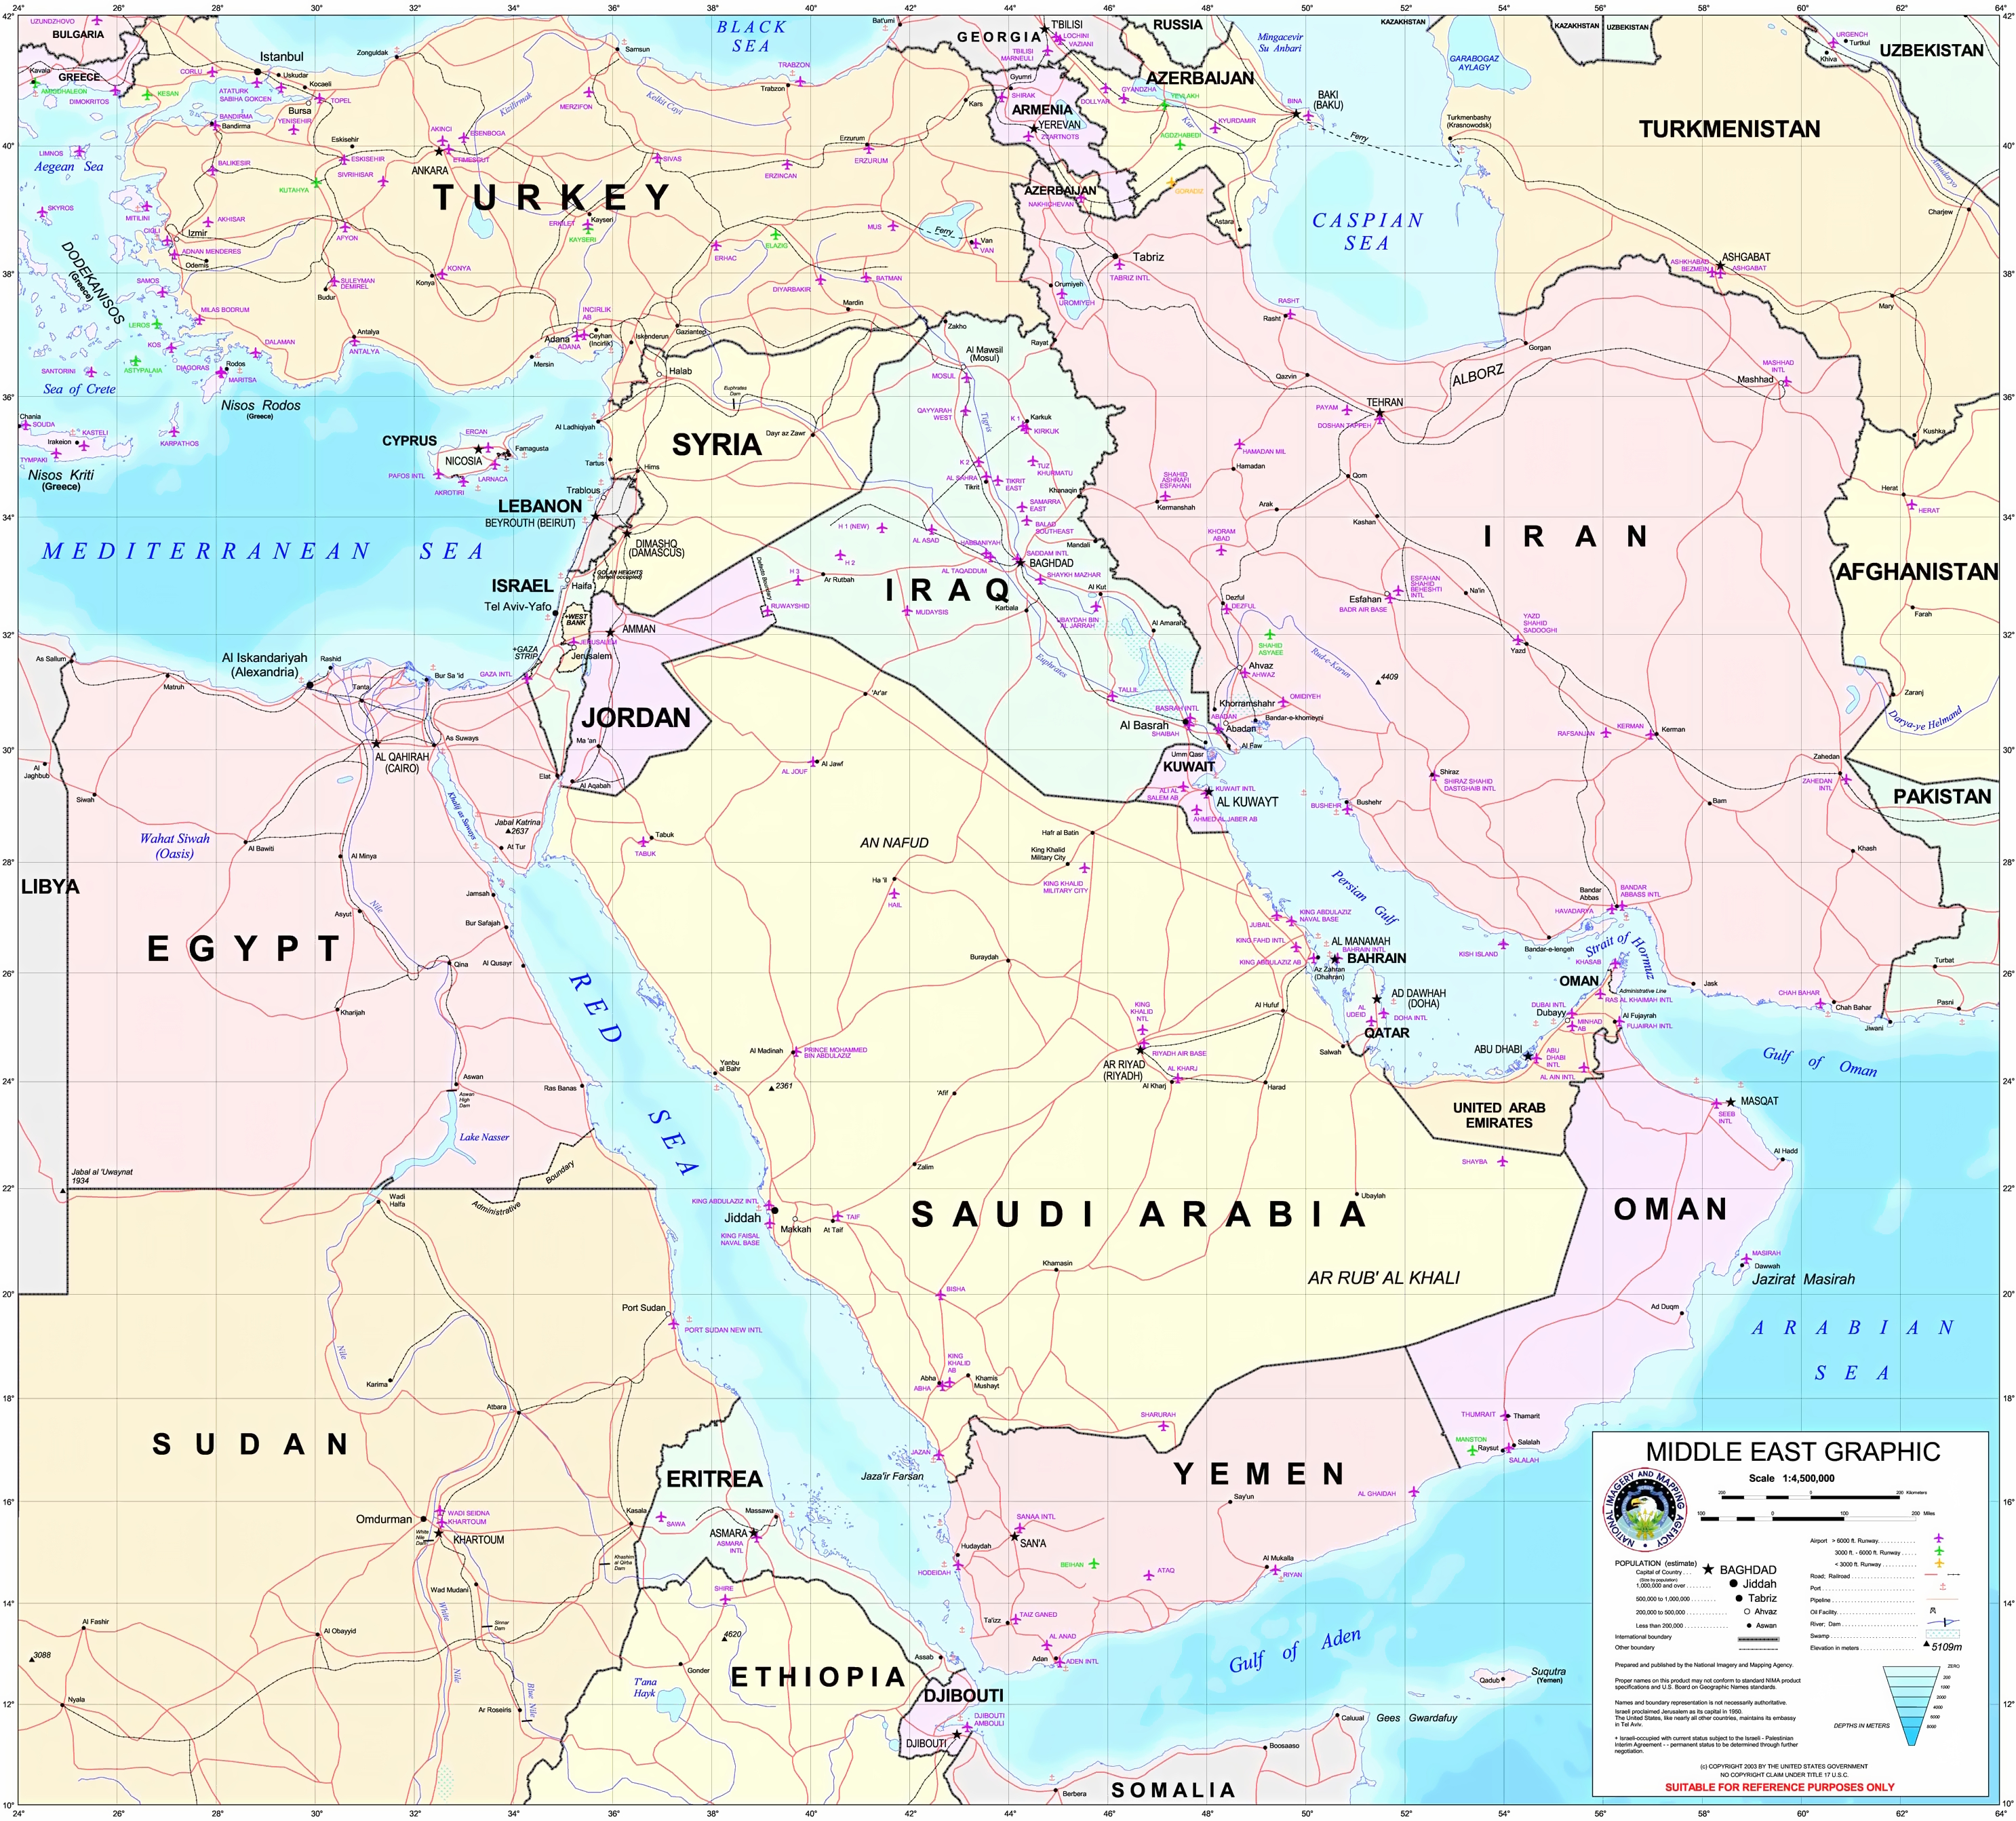 List of modern conflicts in the Middle East - Wikipedia